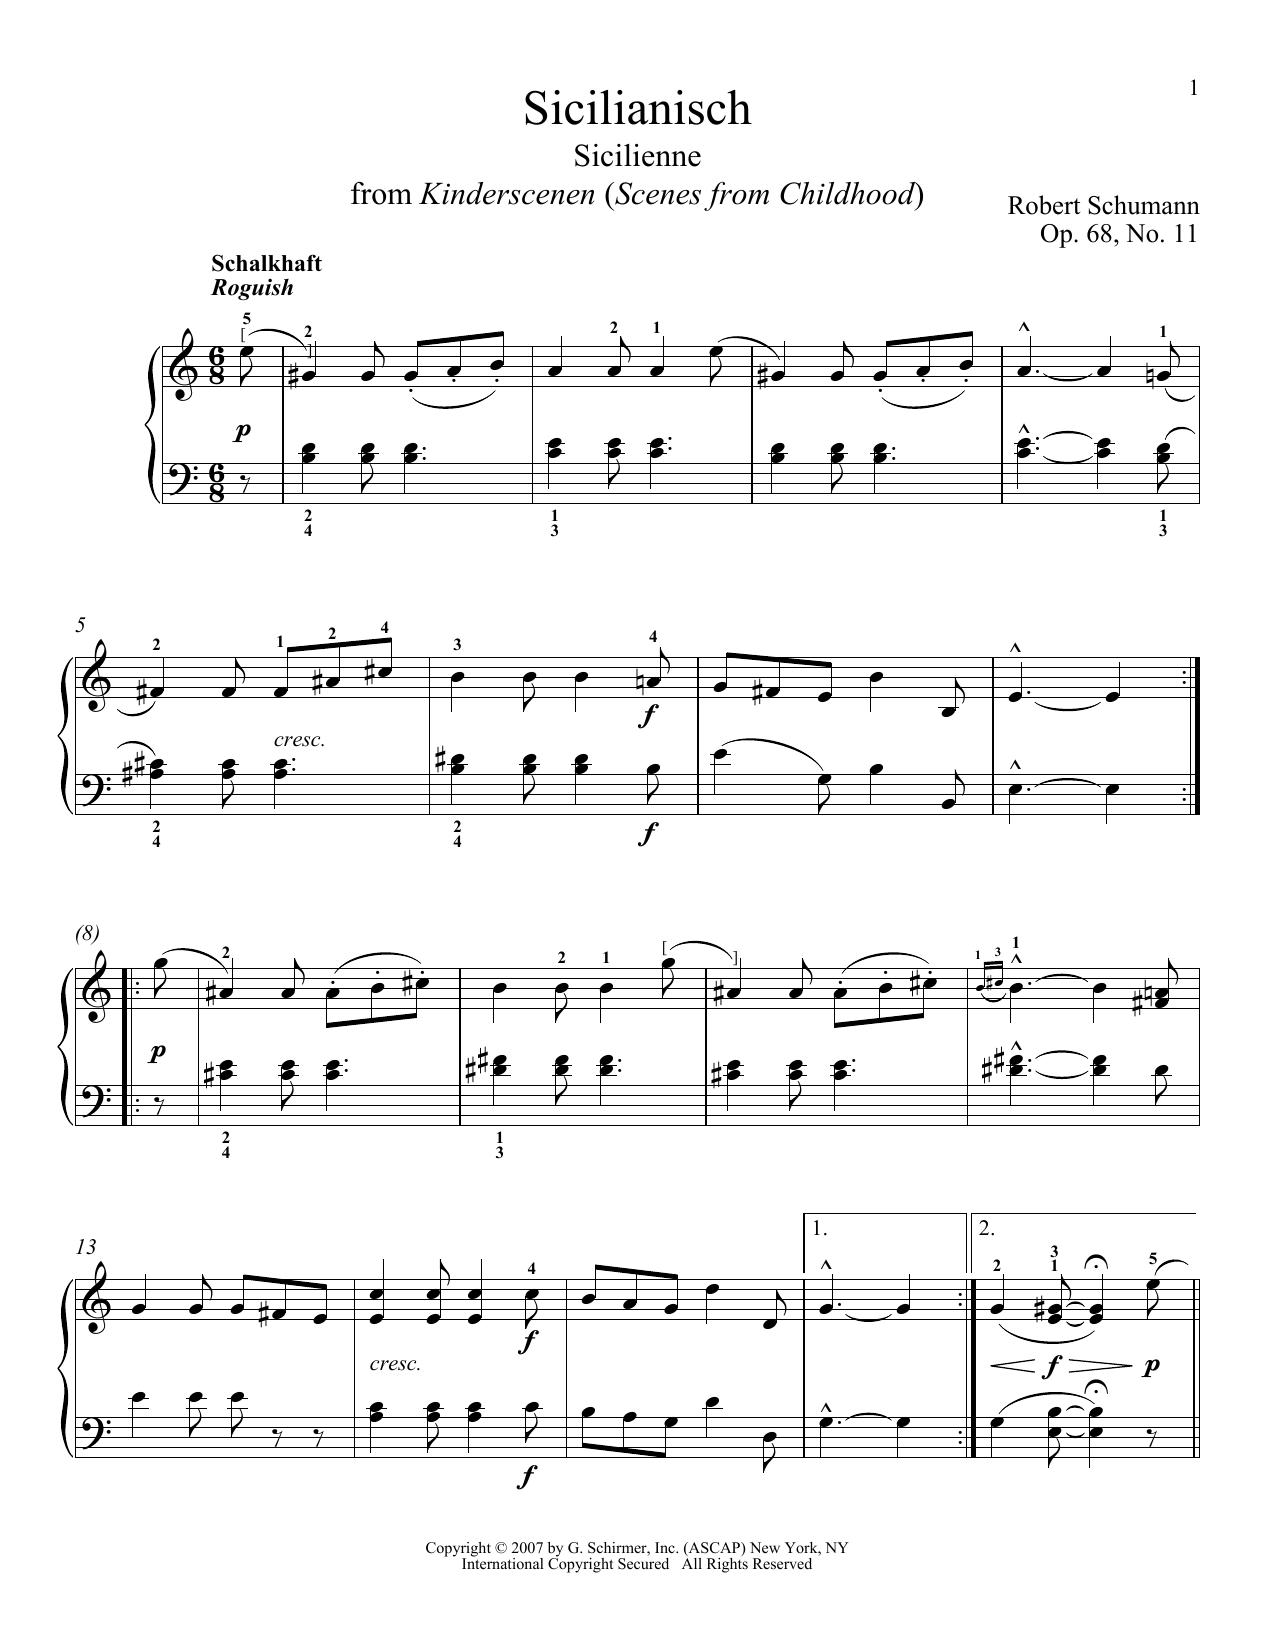 Robert Schumann Sicilienne, Op. 68, No. 11 sheet music notes and chords. Download Printable PDF.